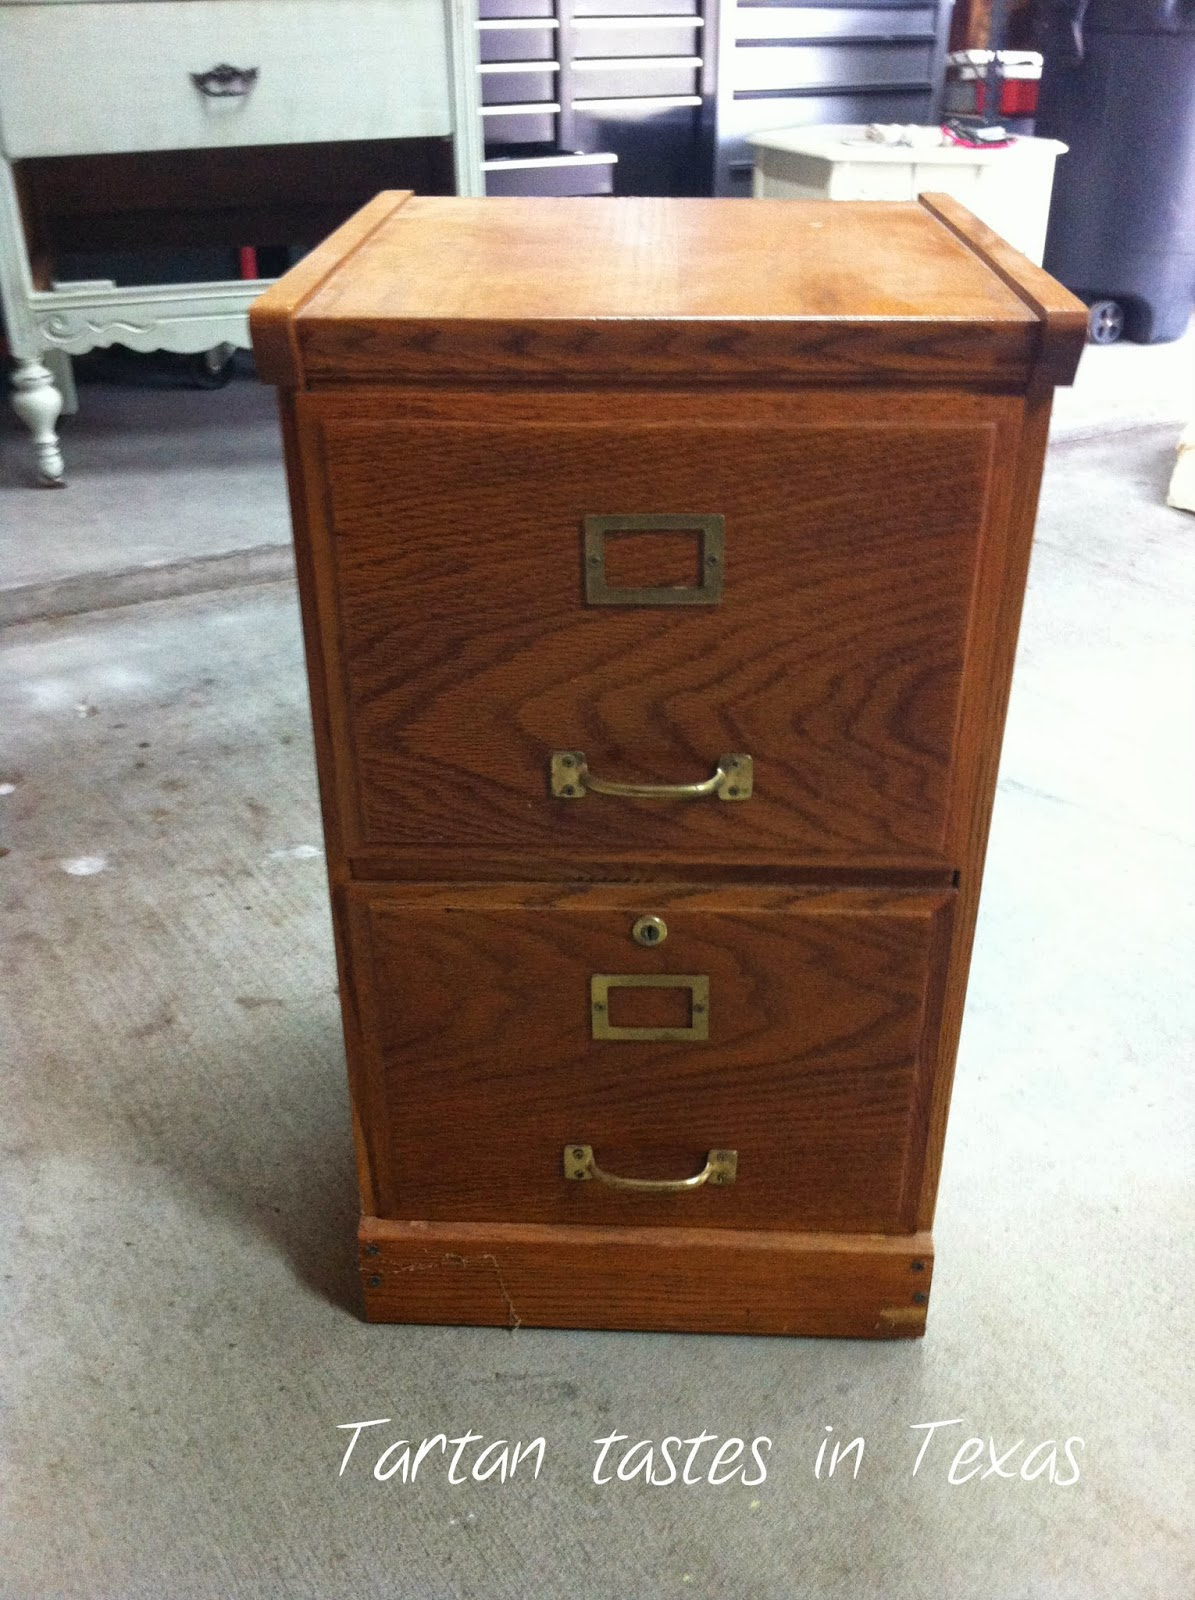 Tartan Tastes in Texas: Furniture Friday - File Cabinet Redo